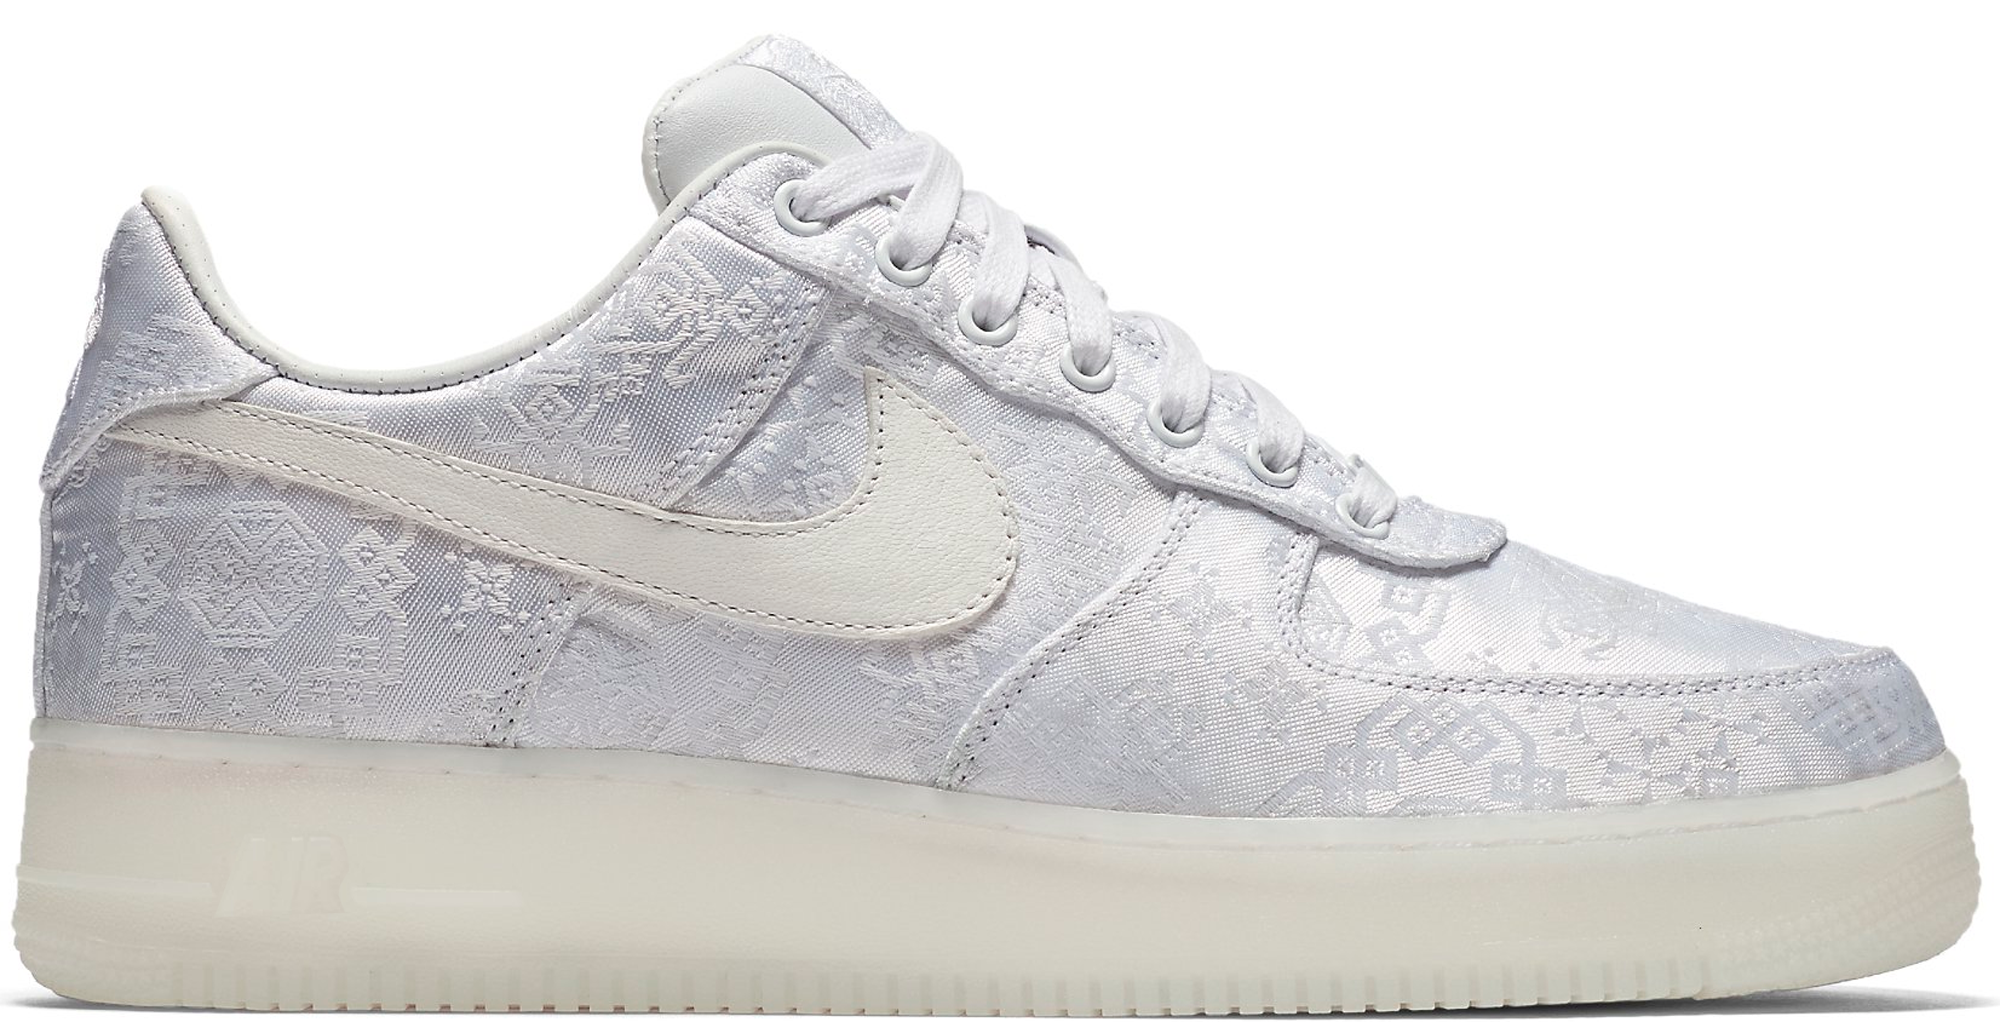 Nike Air Force 1 Low CLOT 1WORLD (2018